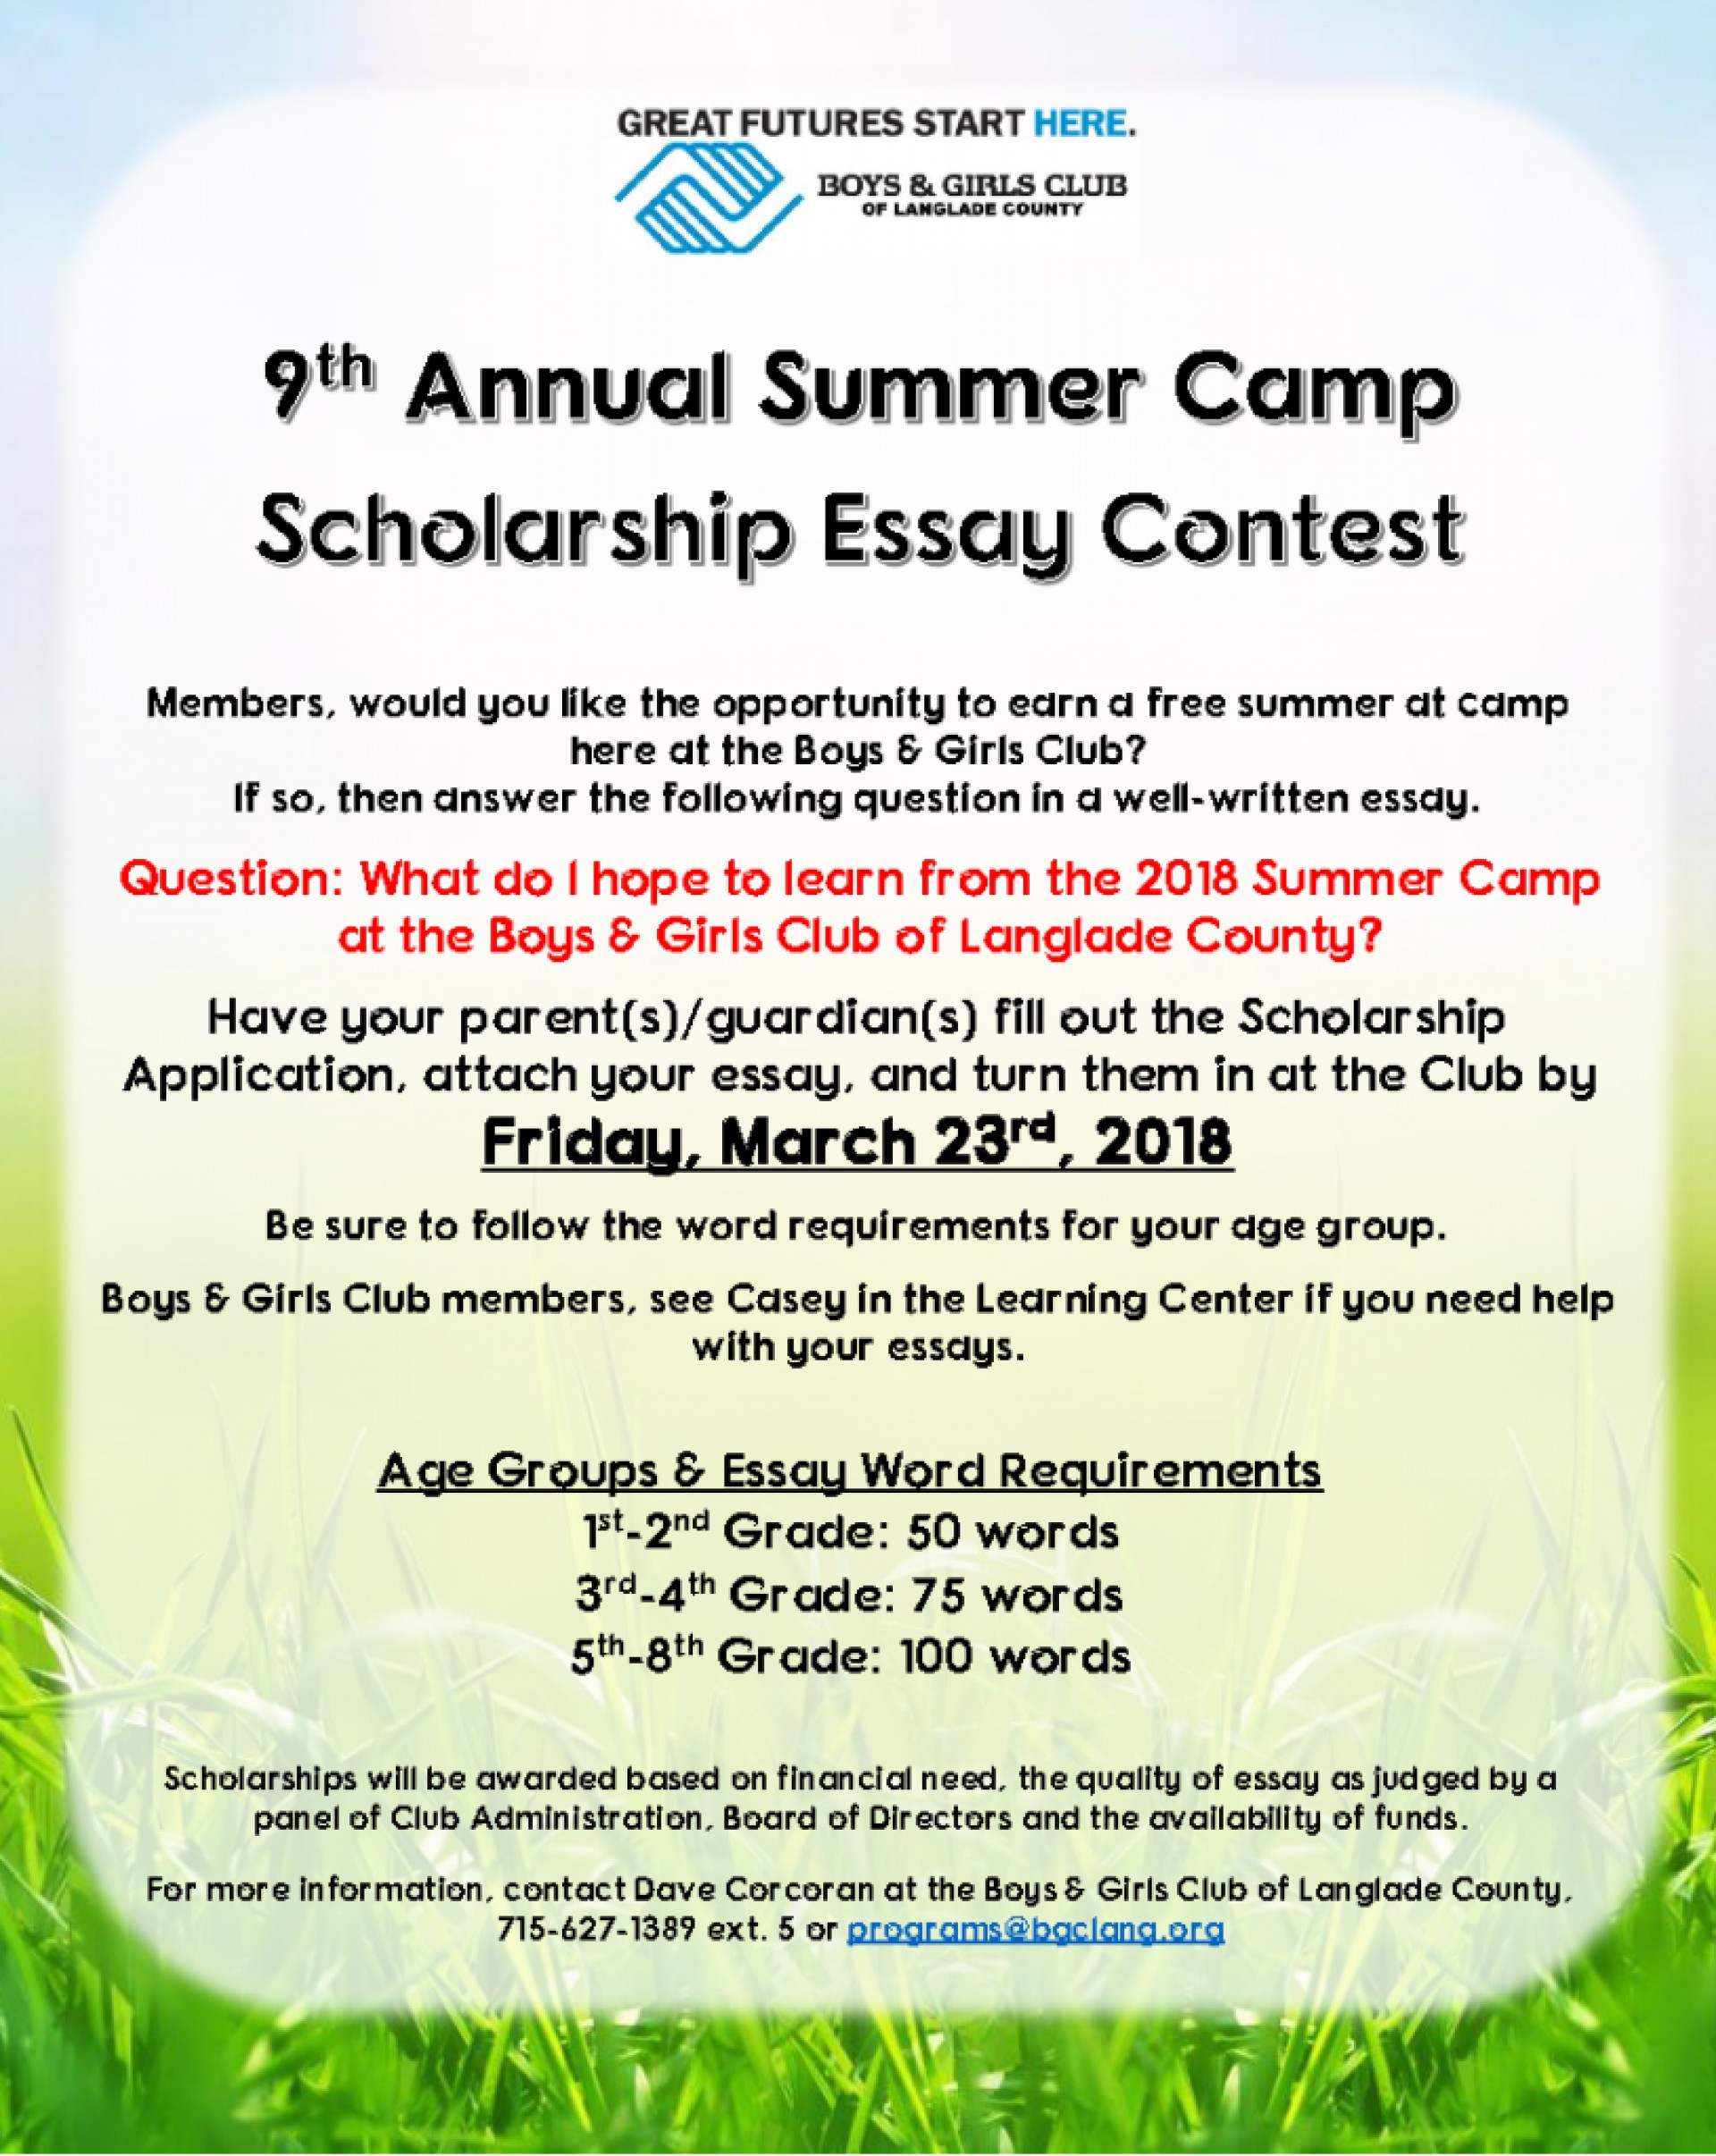 009 Essay Contest 815x1024 Scholarship Astounding Contests For High School Students 2019 Middle 1920